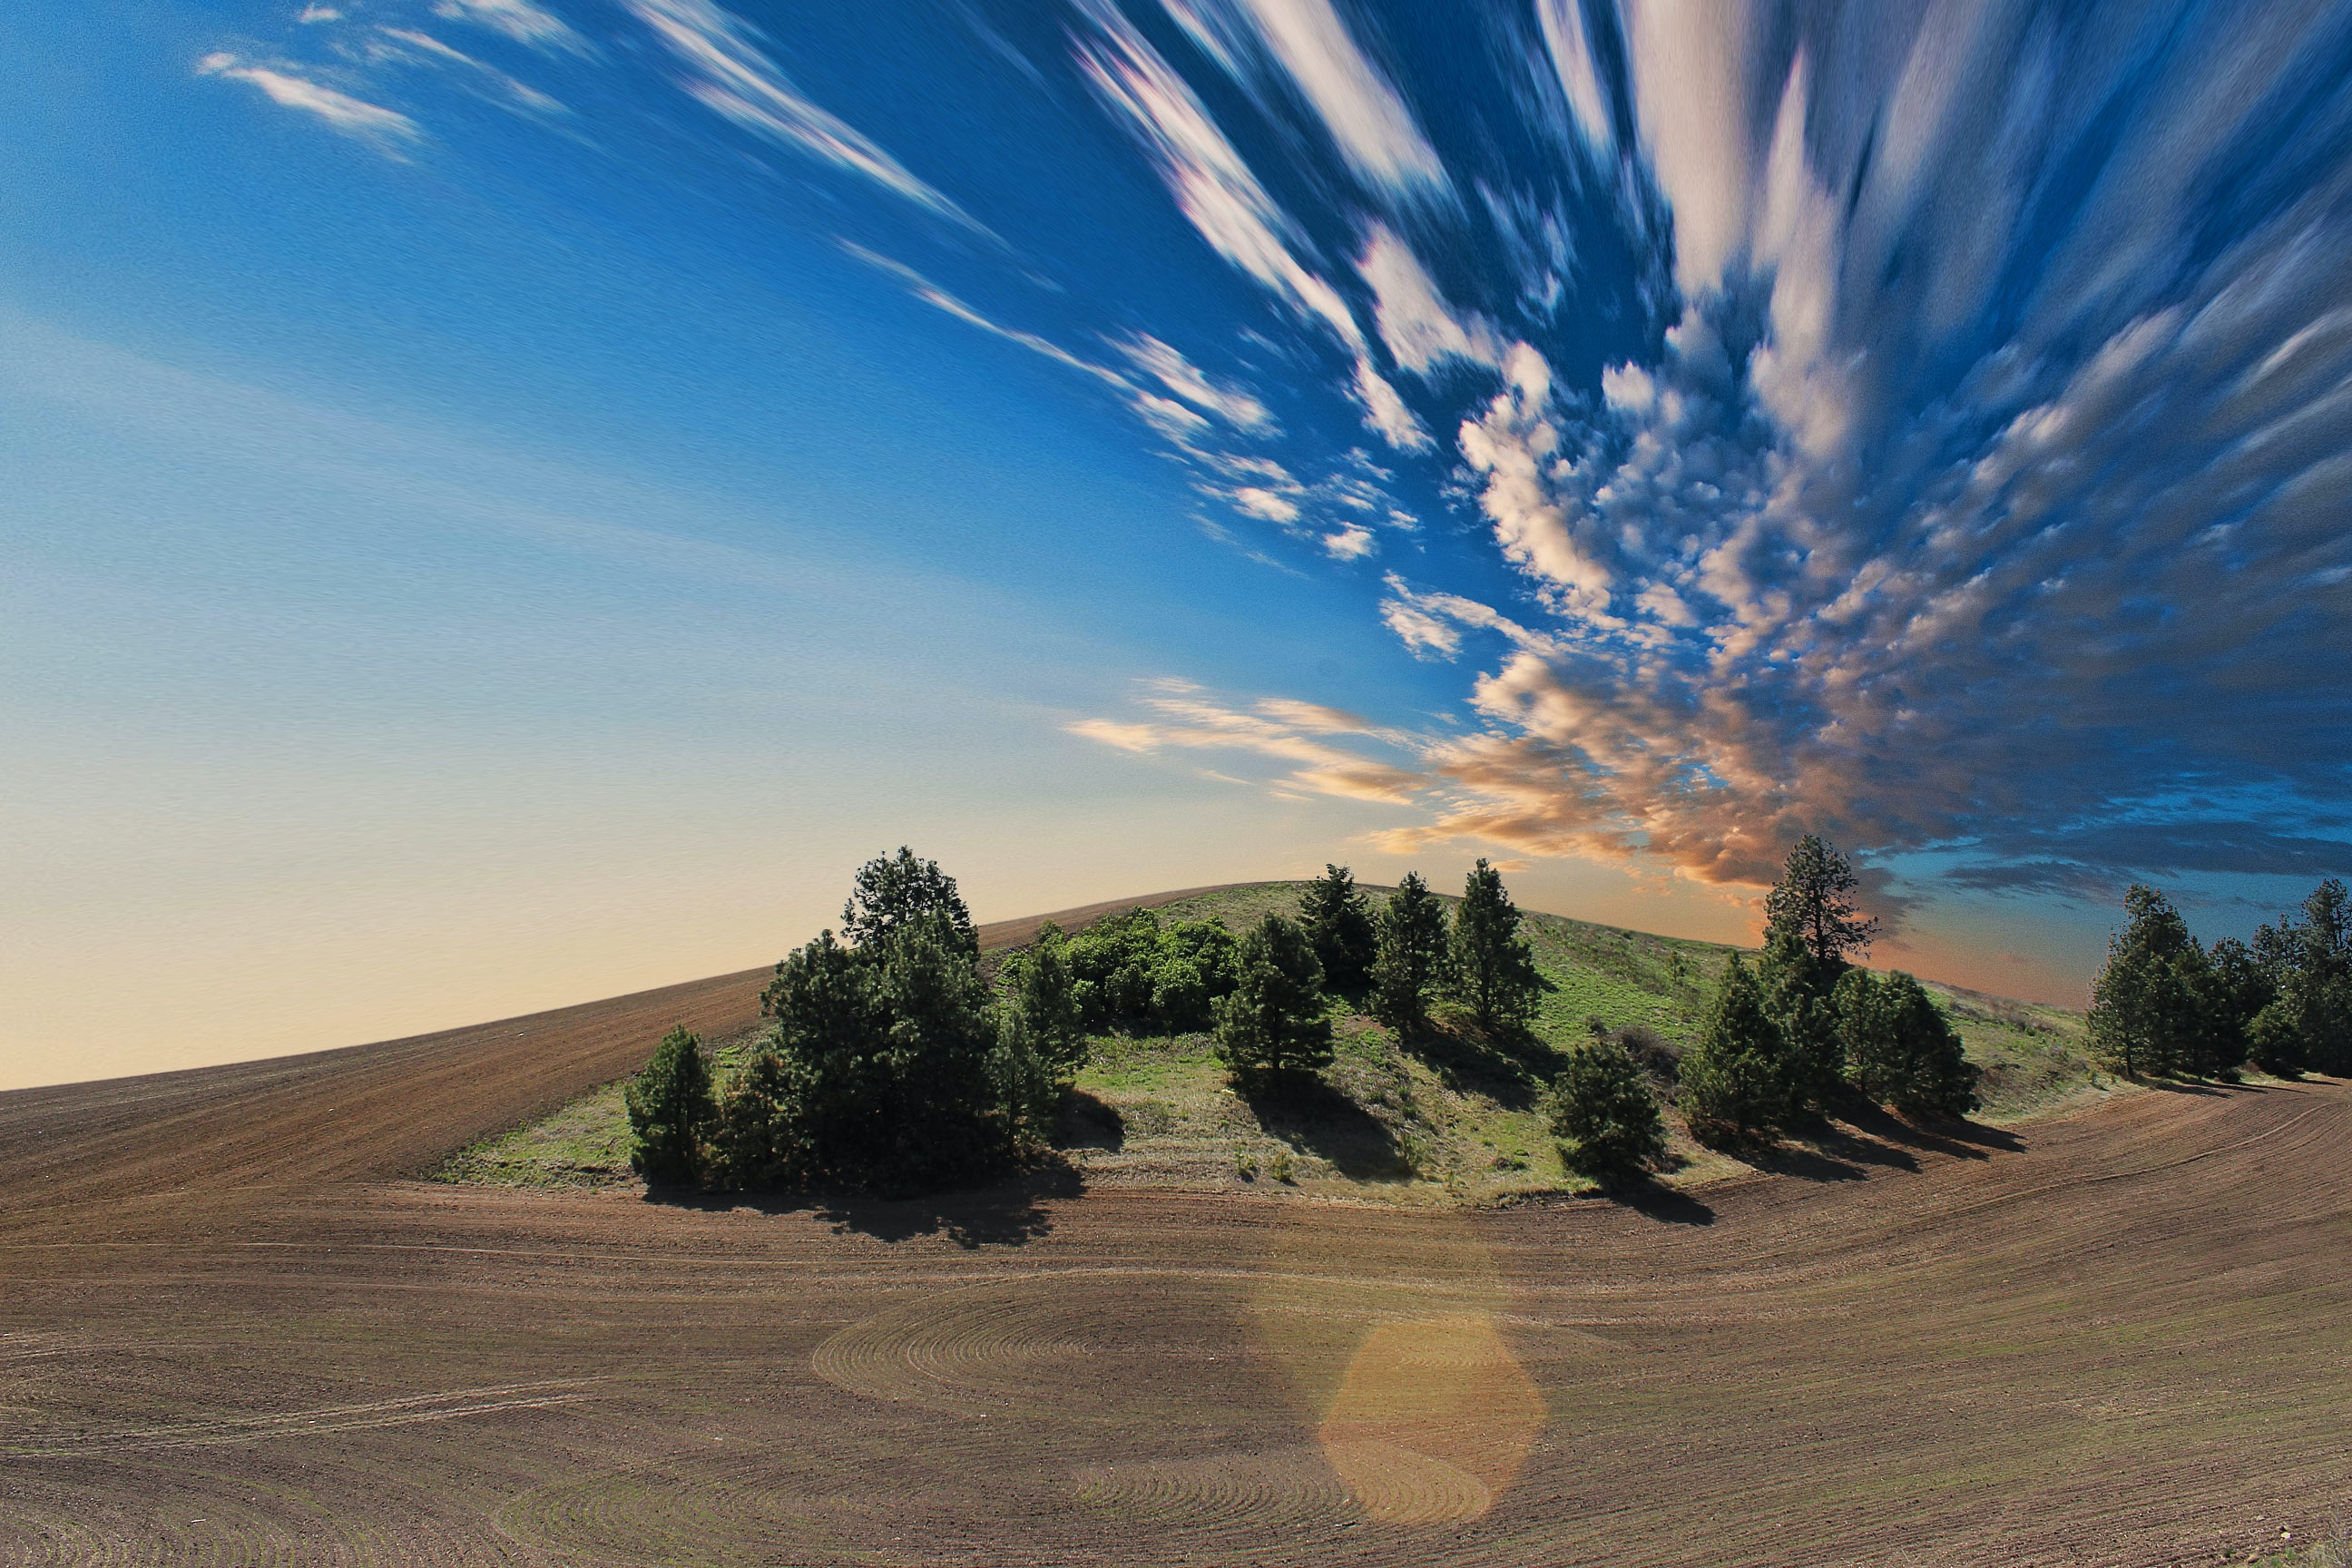 A bizarre shot of a plowed field with a patch of trees and clouds rapidly moving across the sky